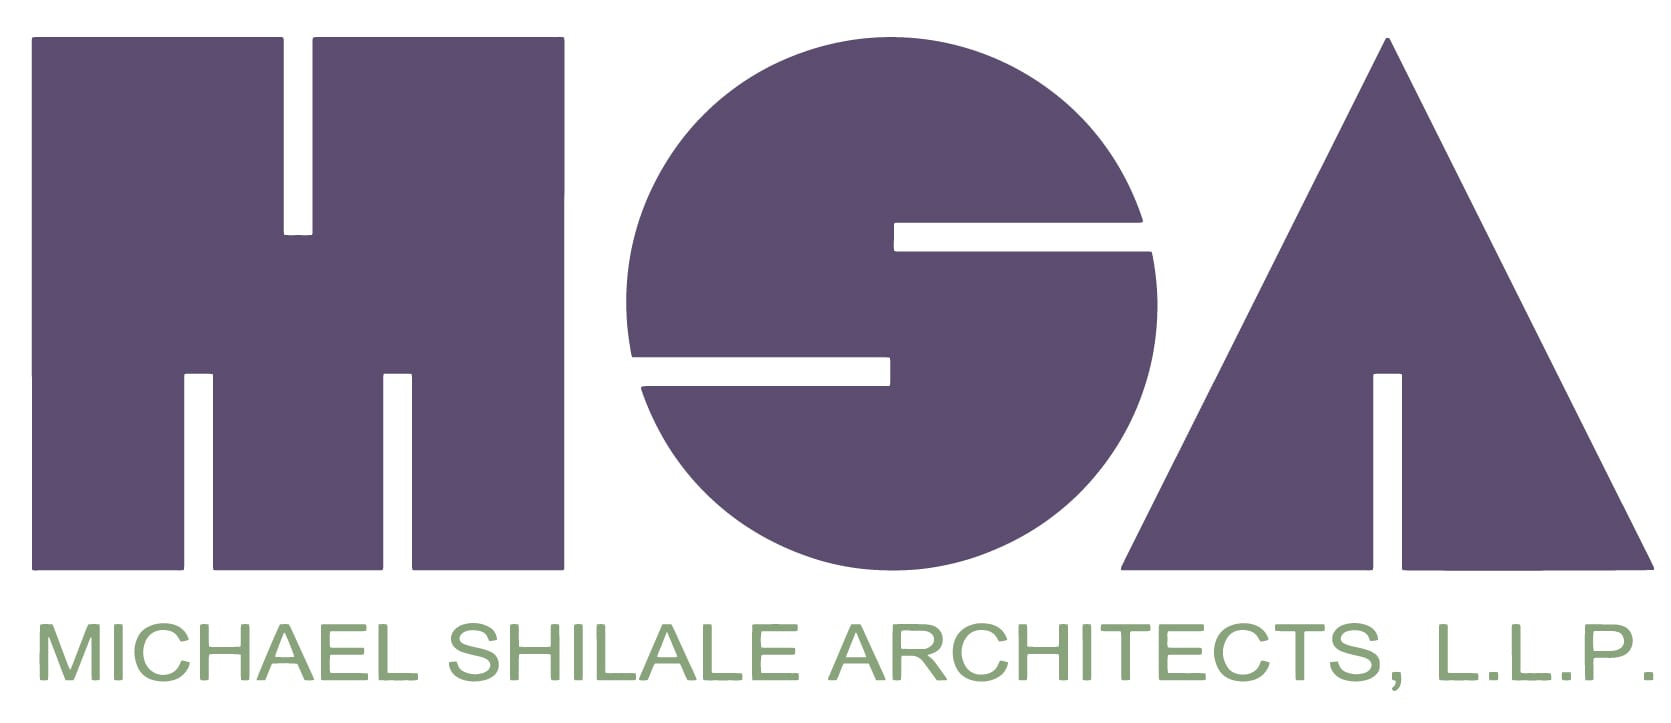 Michael Shilale Architects